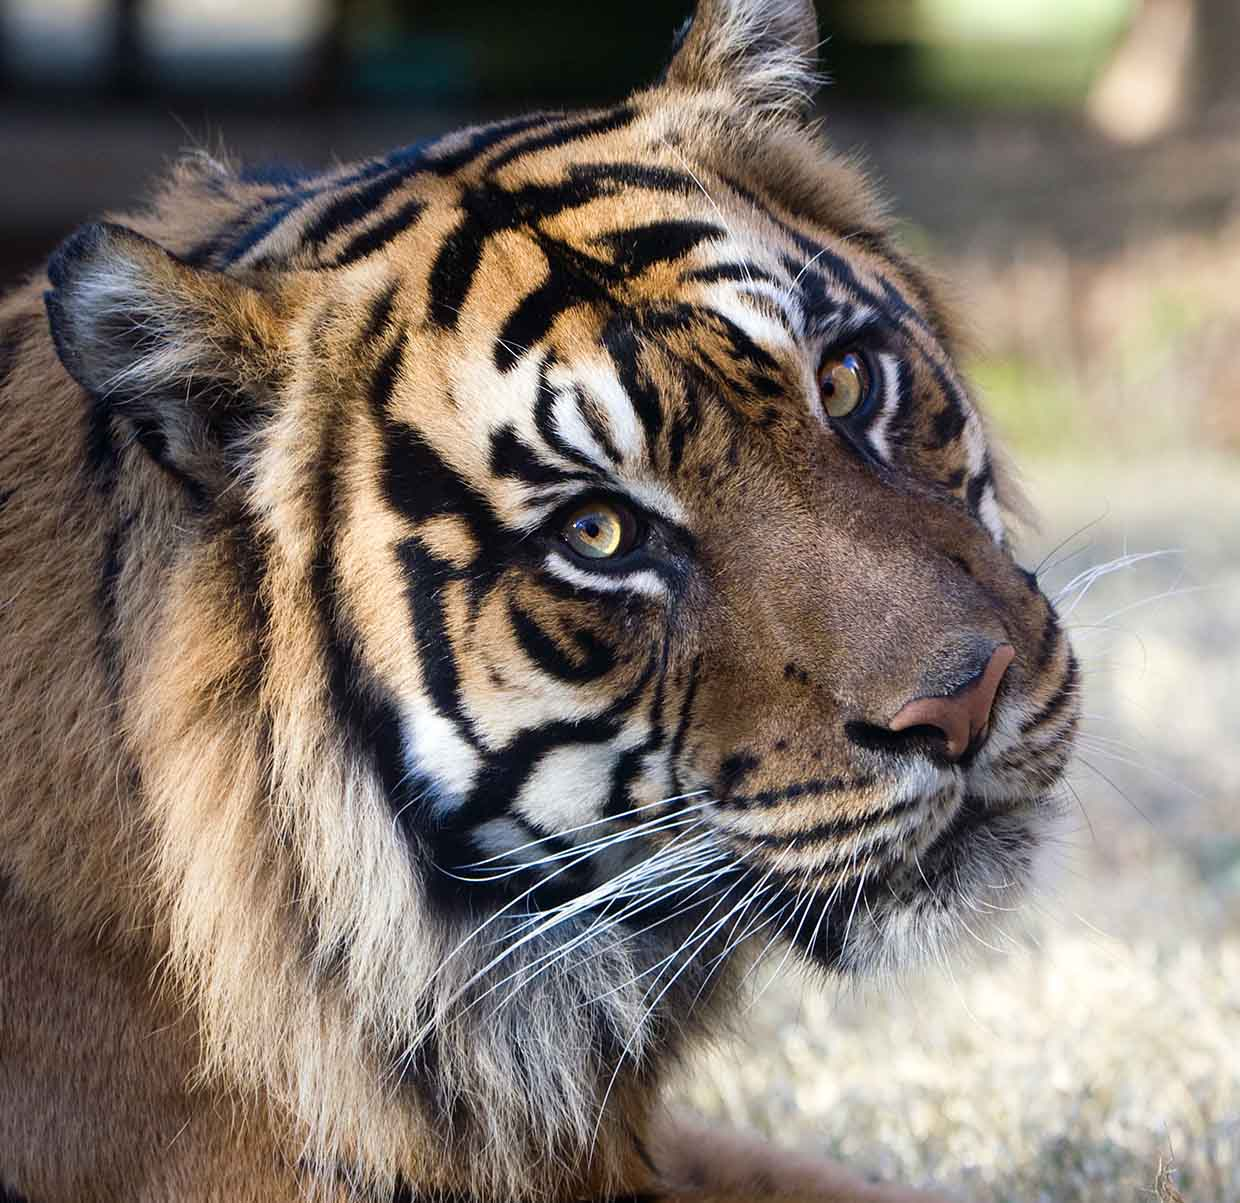 Kavi, a 13-year-old male Sumatran tiger, traveled back to Zoo Atlanta in March 2014 after nearly two years at Smithsonian's National Zoological Park. (